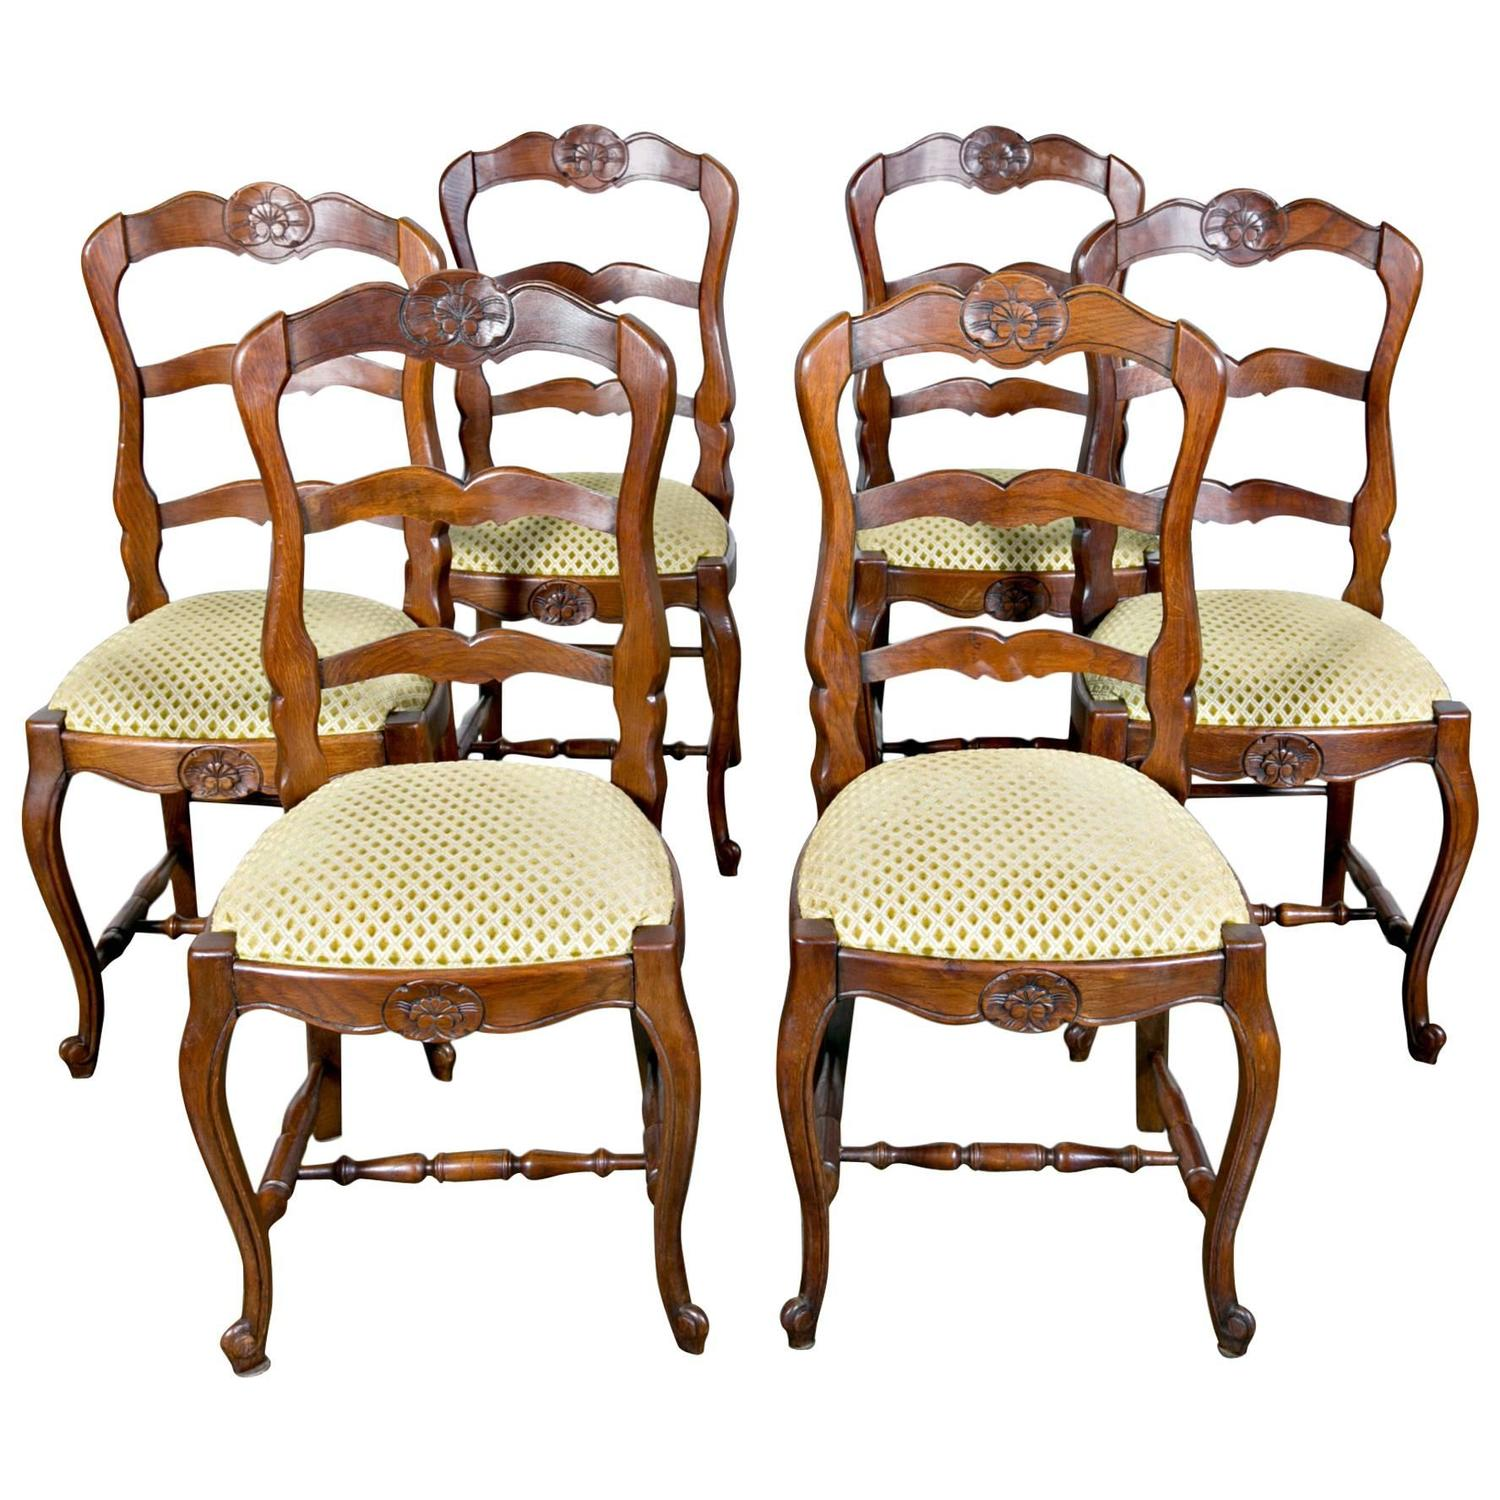 Set of Six Country French Ladder Back Chairs with Upholstered